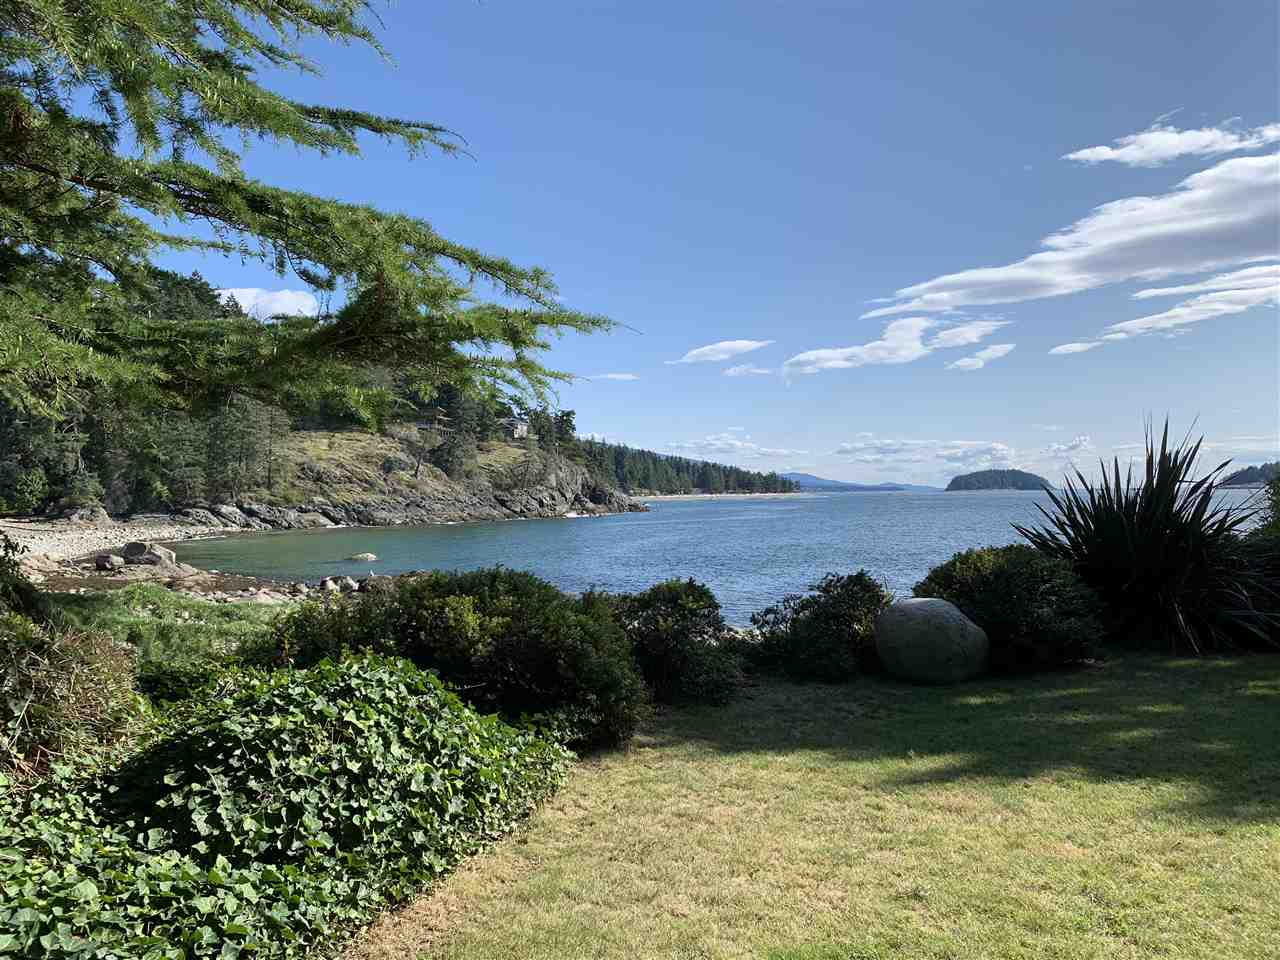 5482 HILL ROAD - Sechelt District House/Single Family for sale, 7 Bedrooms (R2519038) - #35